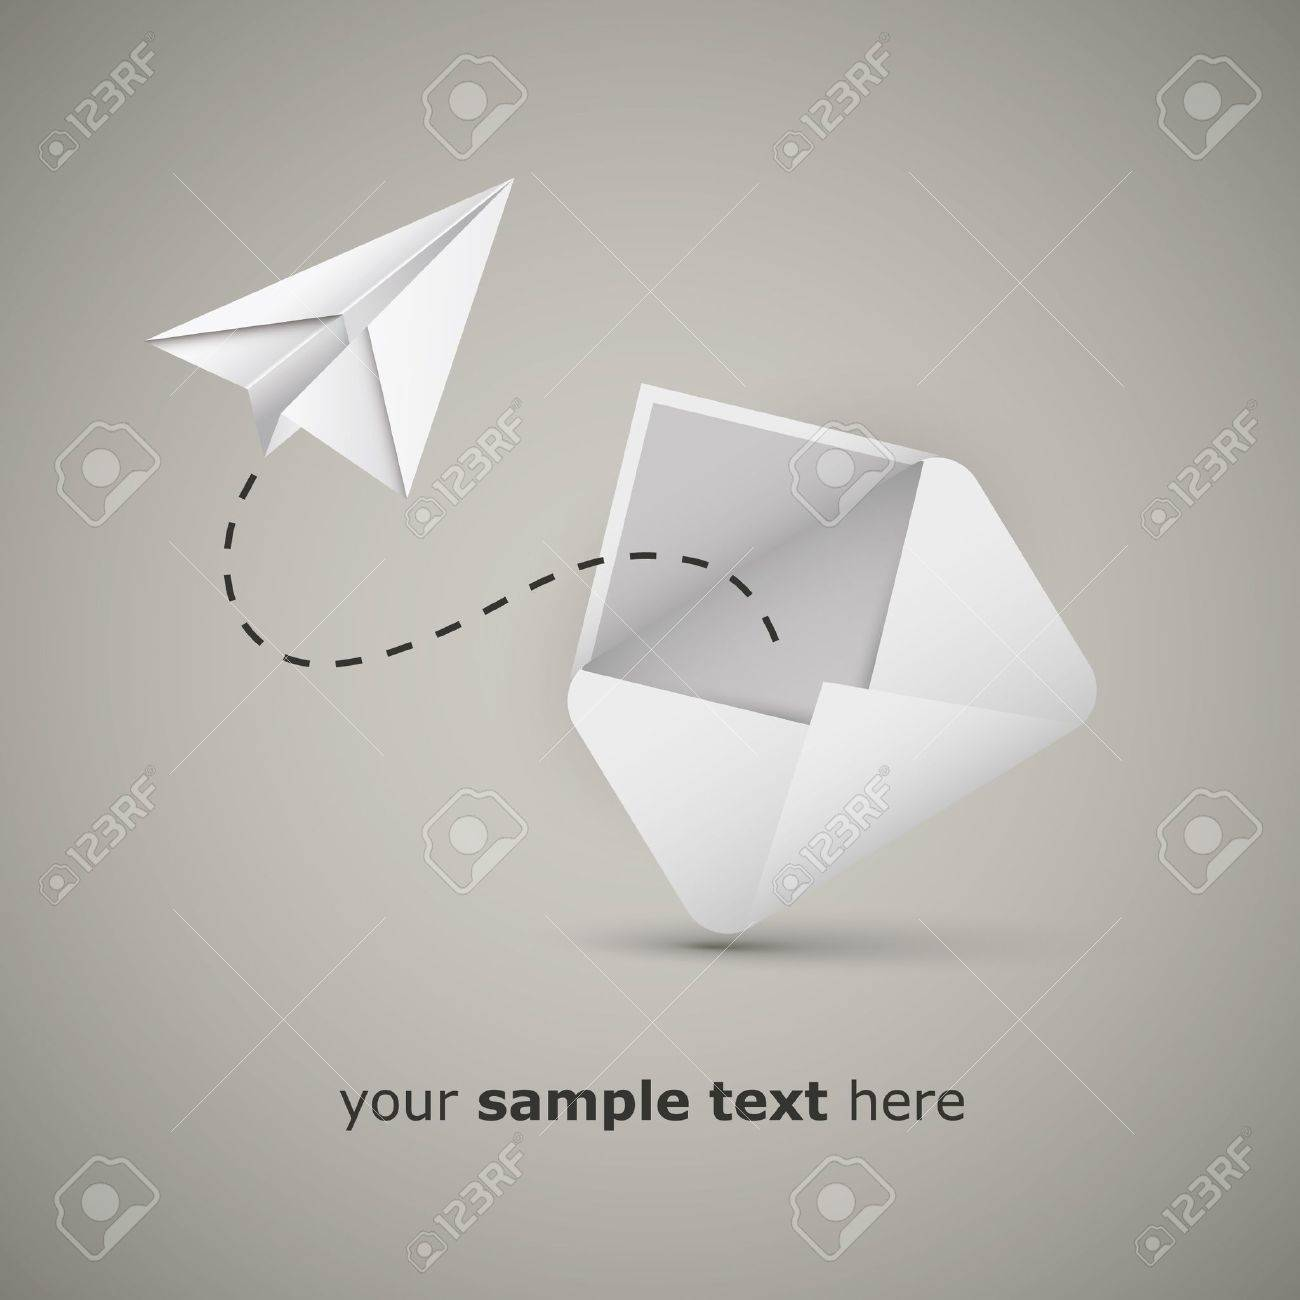 Message from an envelope - Paper airplane Stock Vector - 13568828